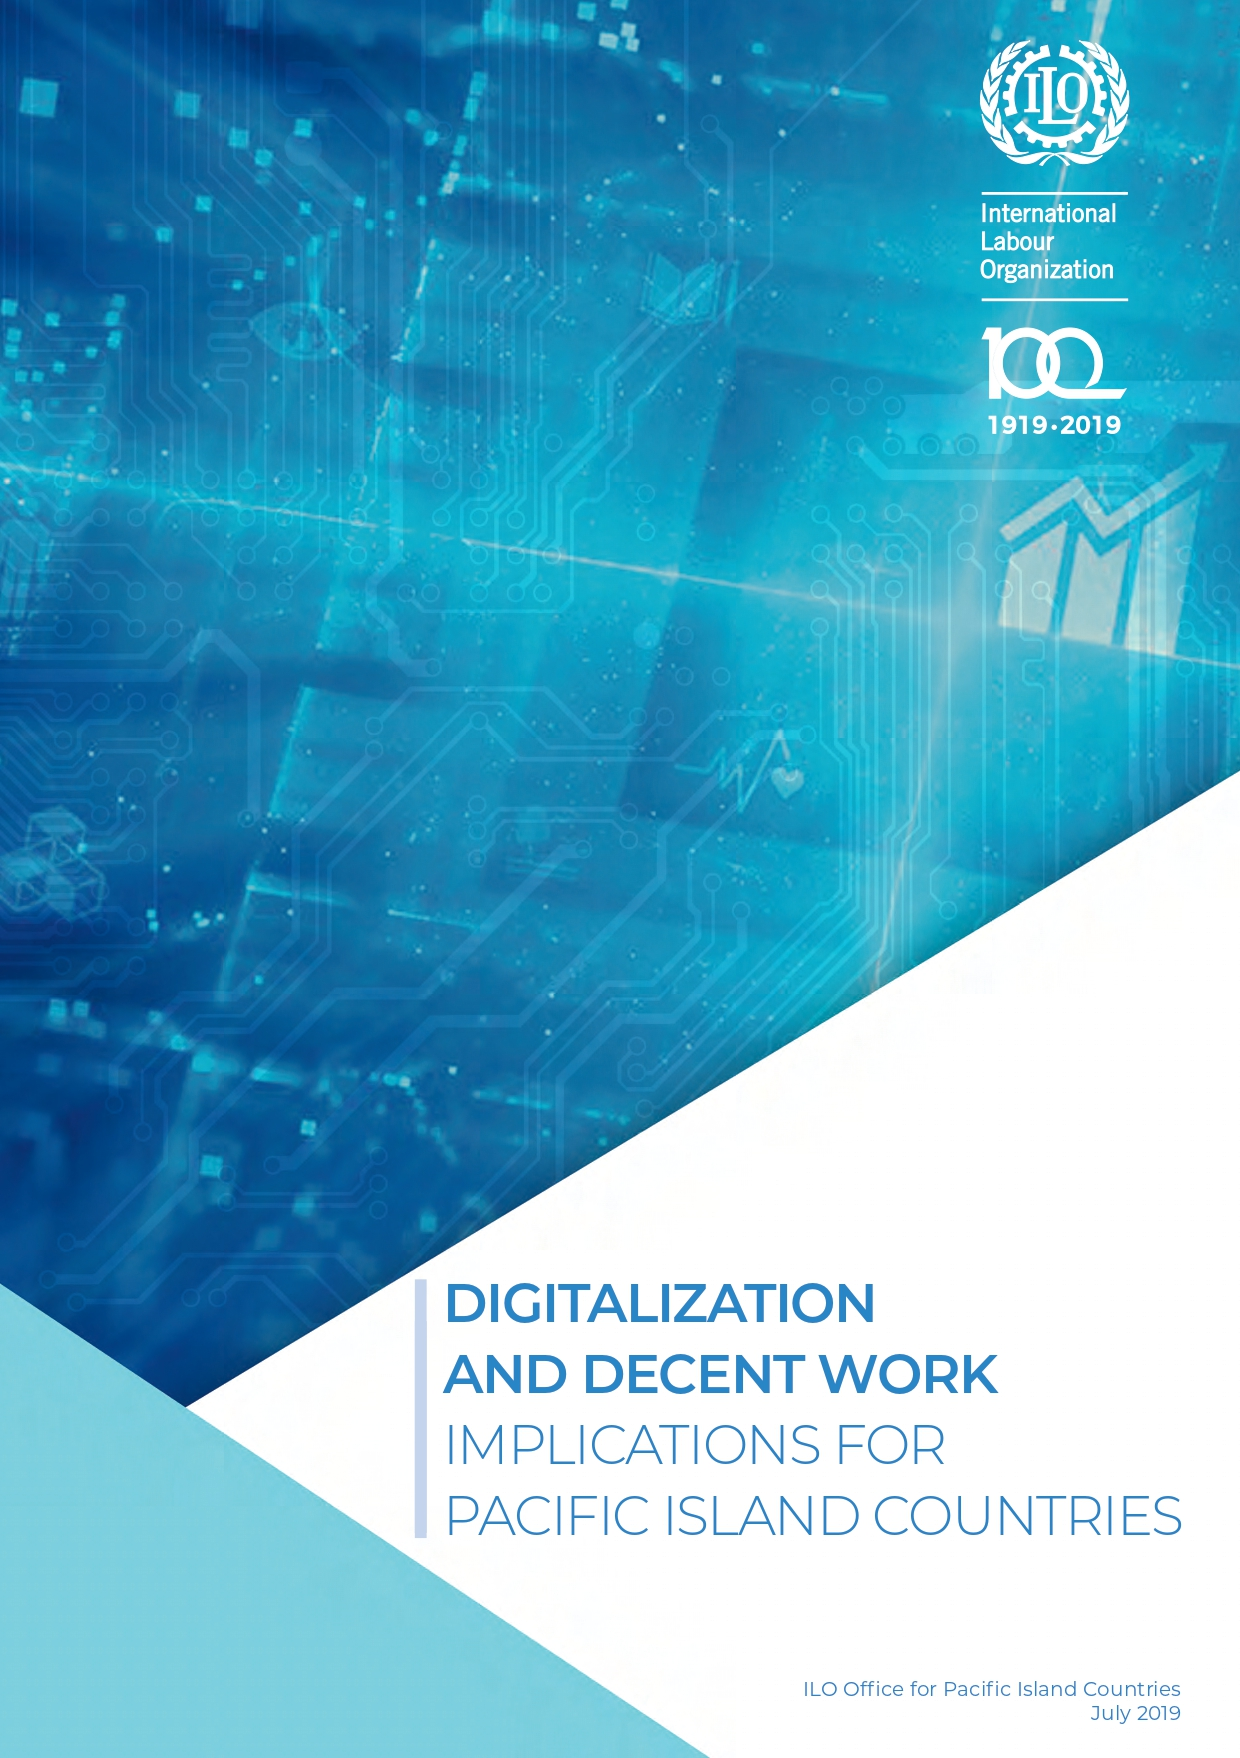 Digitalization and decent work implications for pacific islands countries